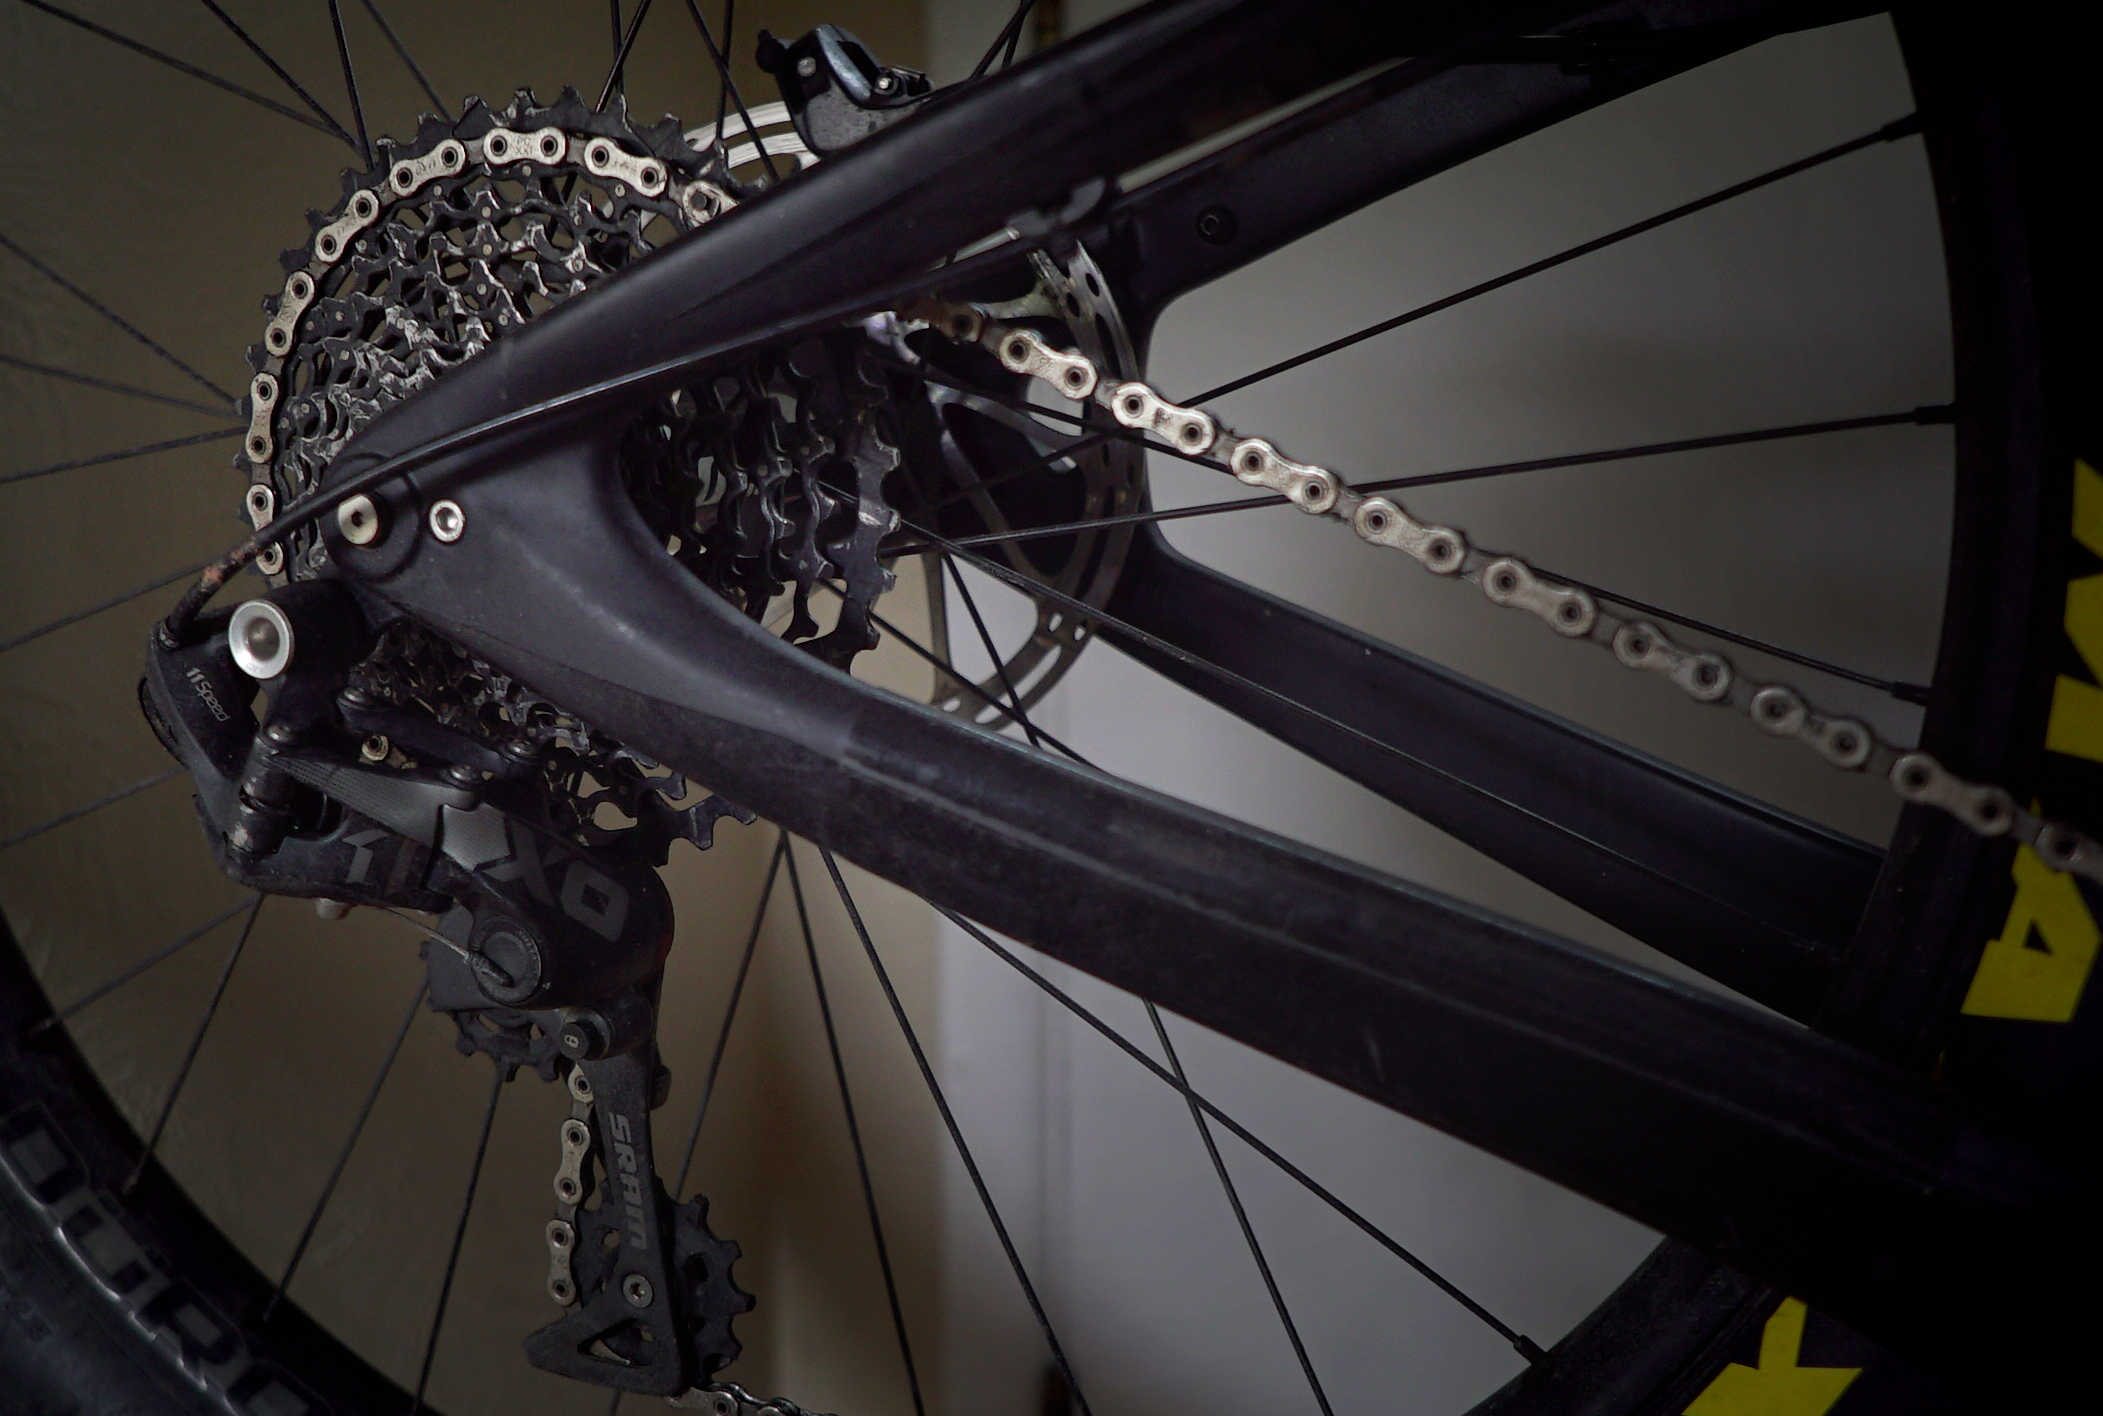 SRAM X0 1 x 11 Drivetrain: - I have run into a little bit of difficulty finding the drivetrain set up that I want for this new bike. Because no one seems to manufacture a 32 tooth chainring with a -4 mm offset, I have maintained my 11 speed drivetrain rather than converting to 12. This will have to do for now.